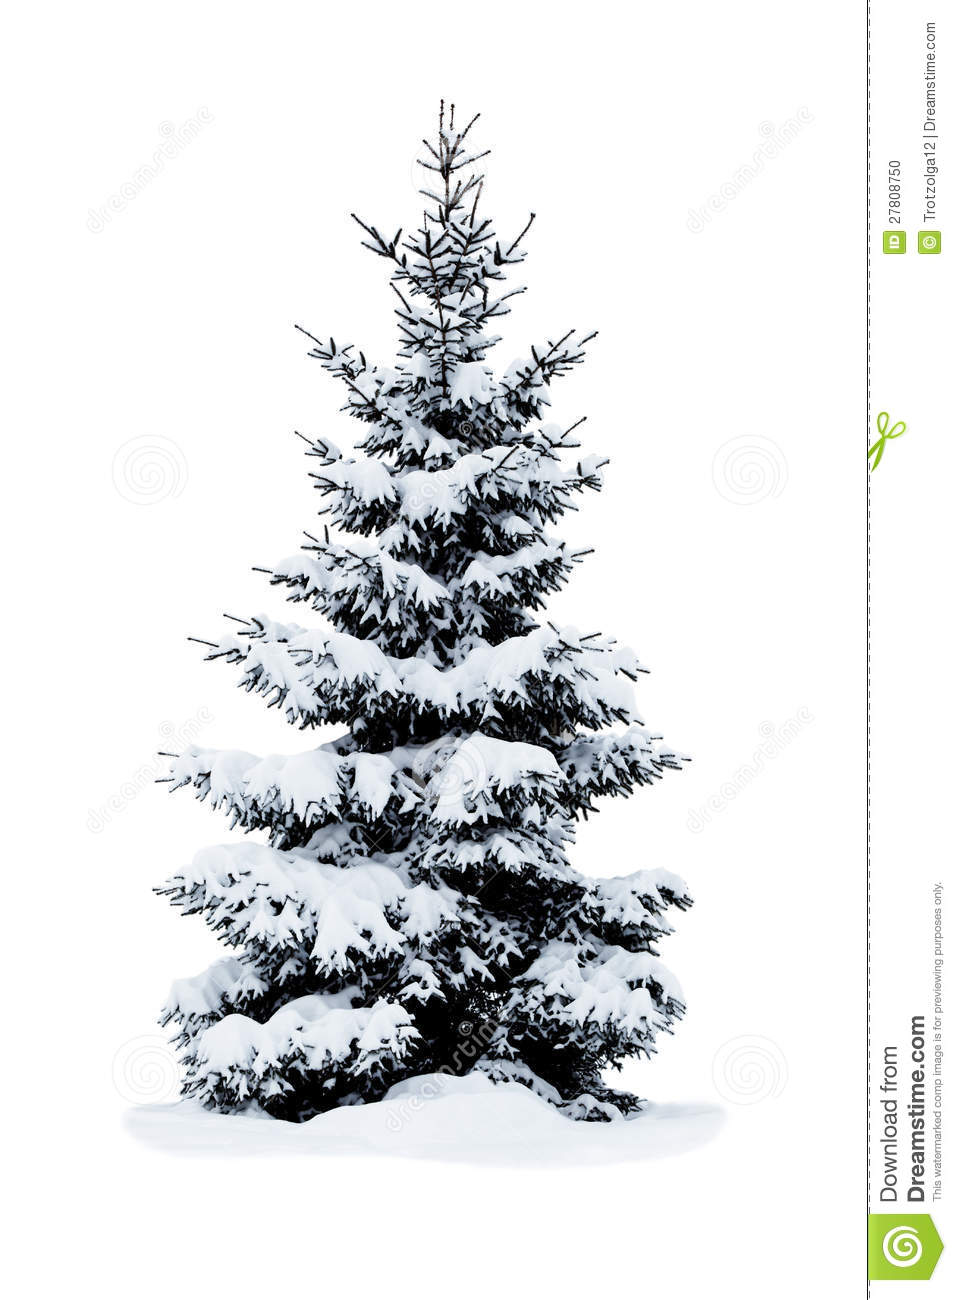 More similar stock images of christmas tree covered with snow